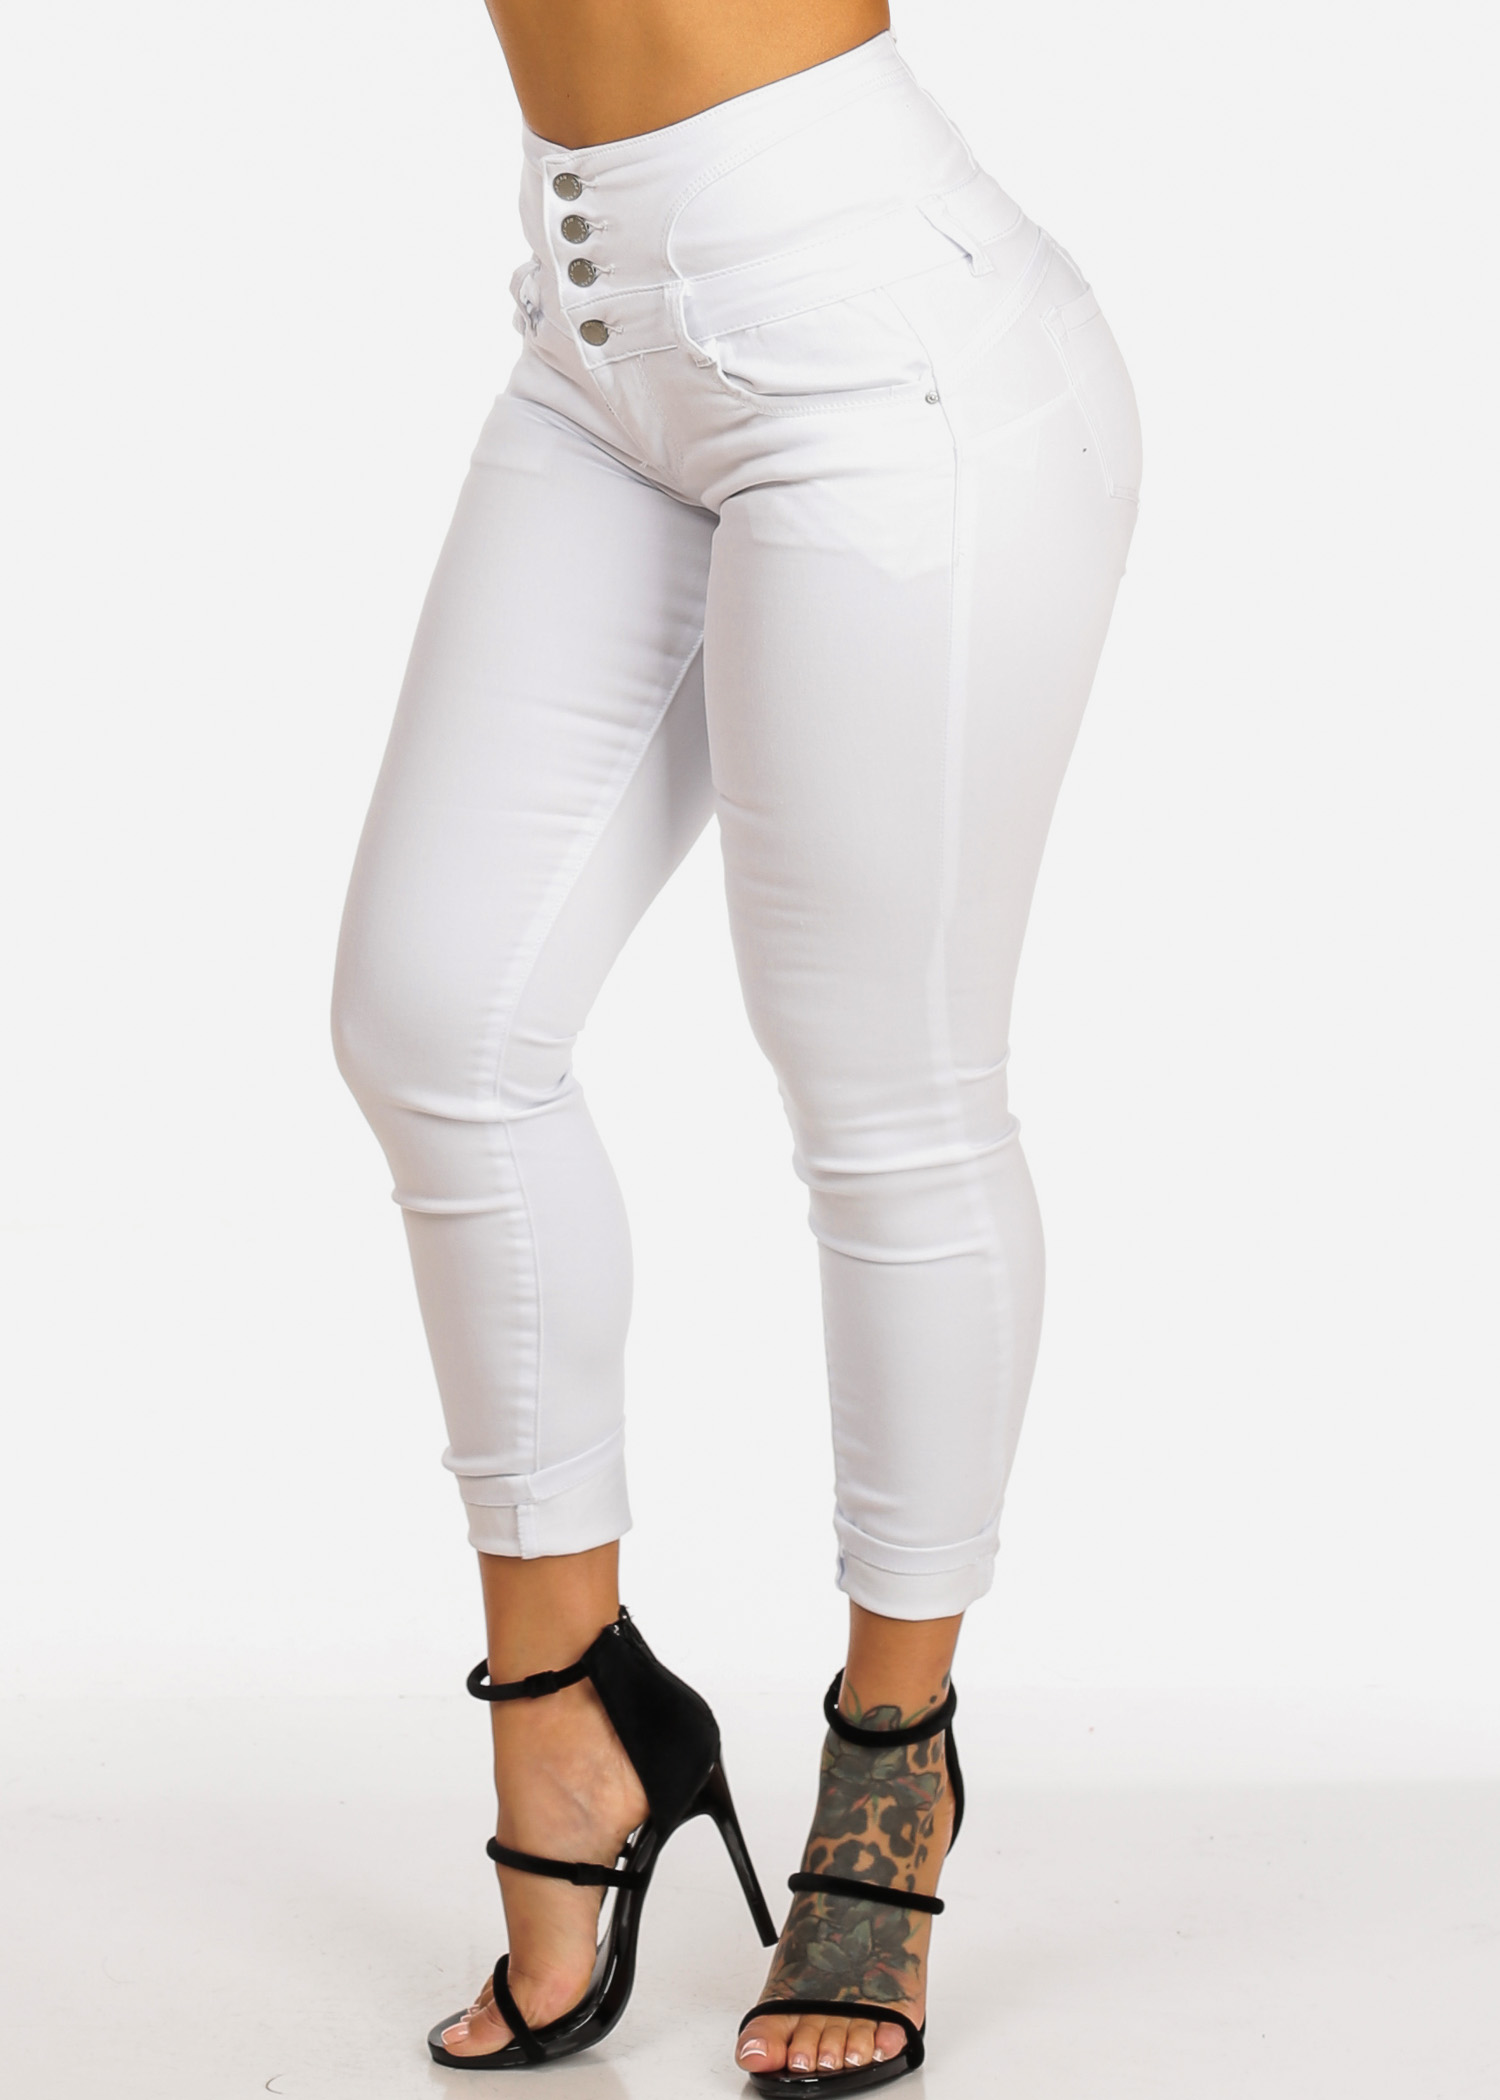 Womens Juniors High Rise 4 Button Butt Lifting Back Lace Up Solid White Skinny Jeans 10584R